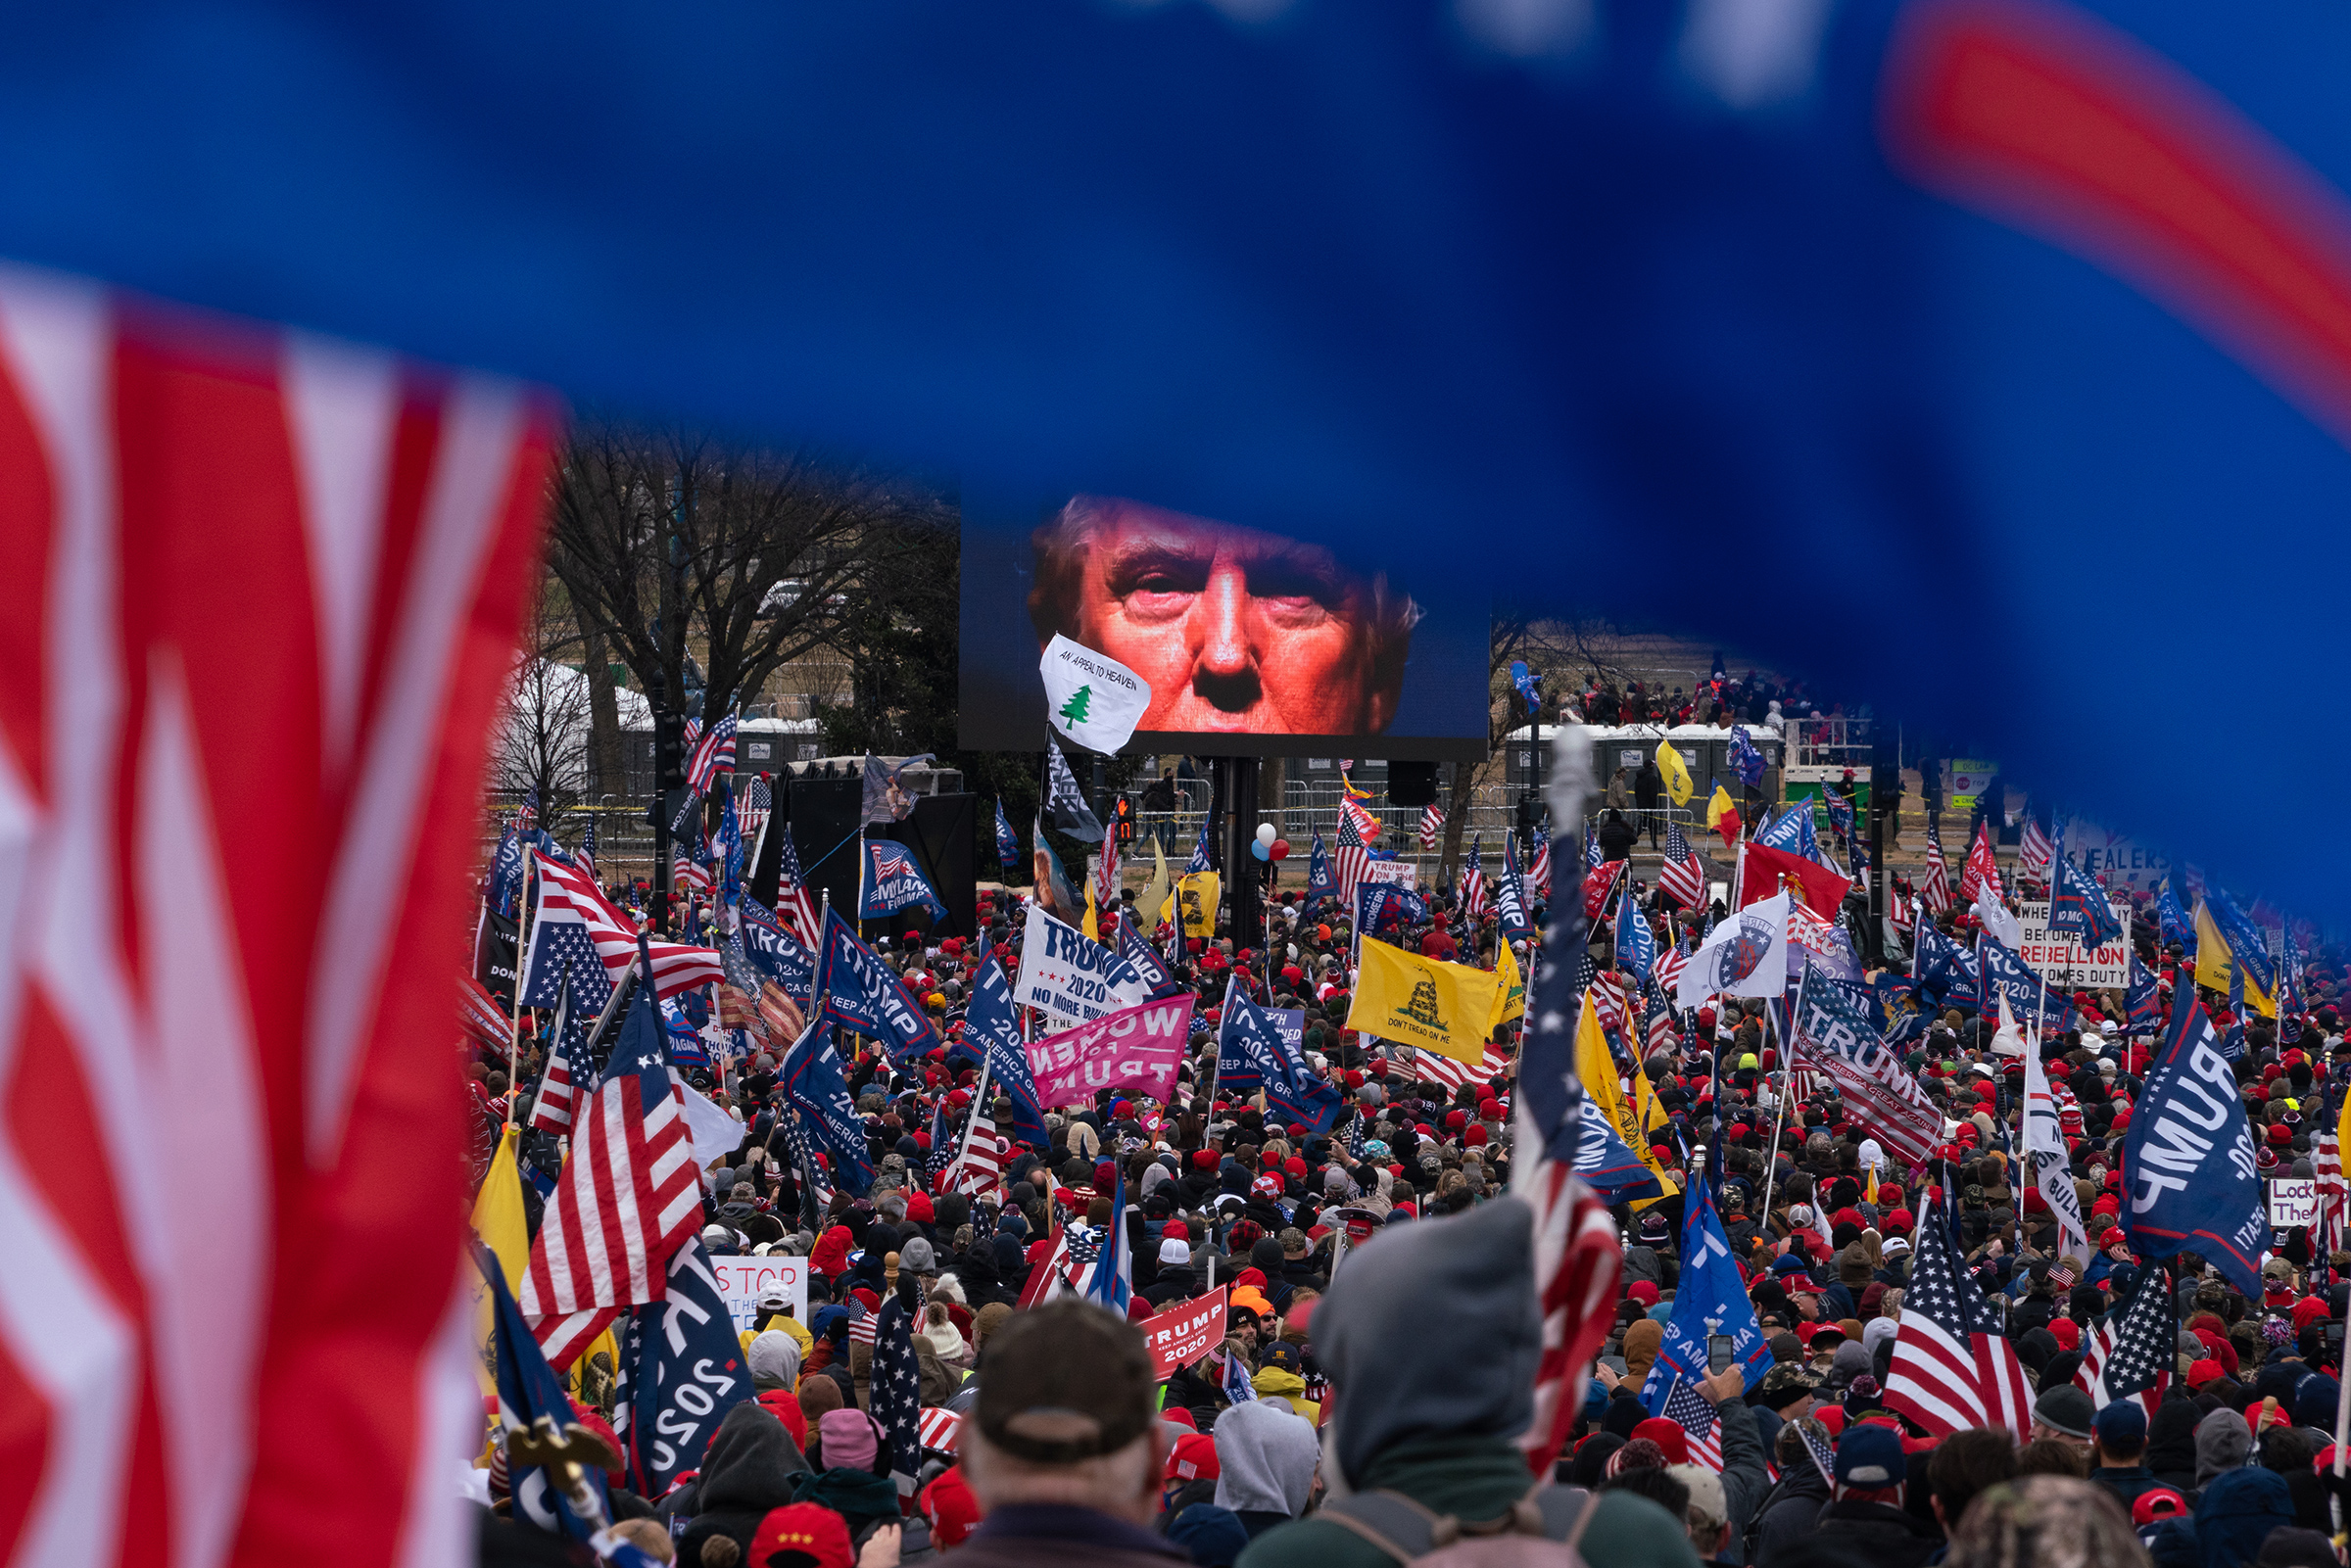 President Trump appears on a large screen at the  Save America Rally  on Jan. 6, the day that Congress was slated to certify the electoral victory for his opponent. Following his inflammatory speech, rioters stormed the Capitol.